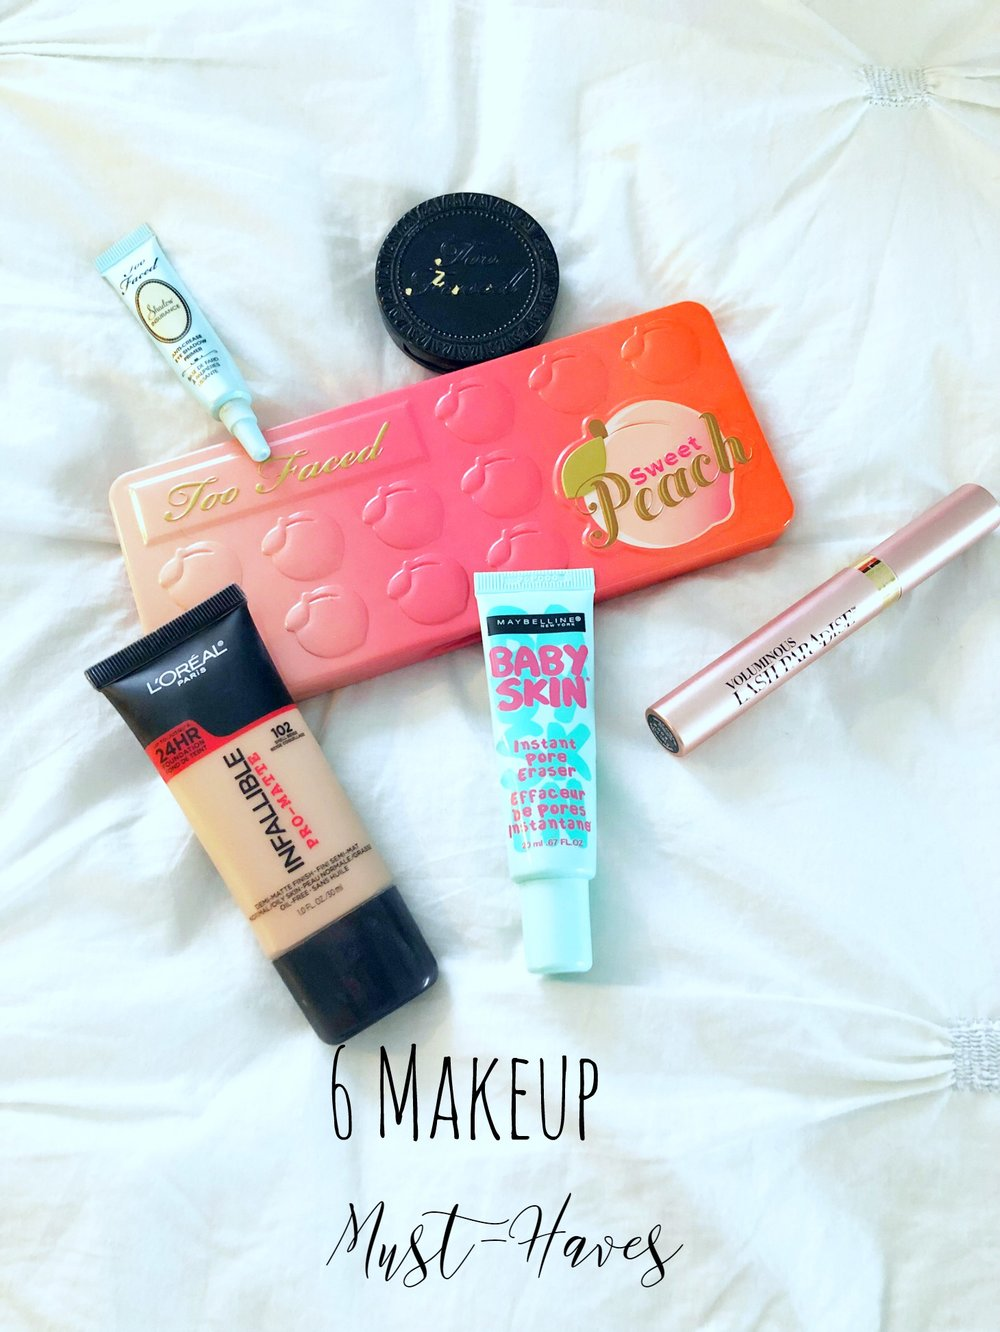 6 Makeup Must-Haves